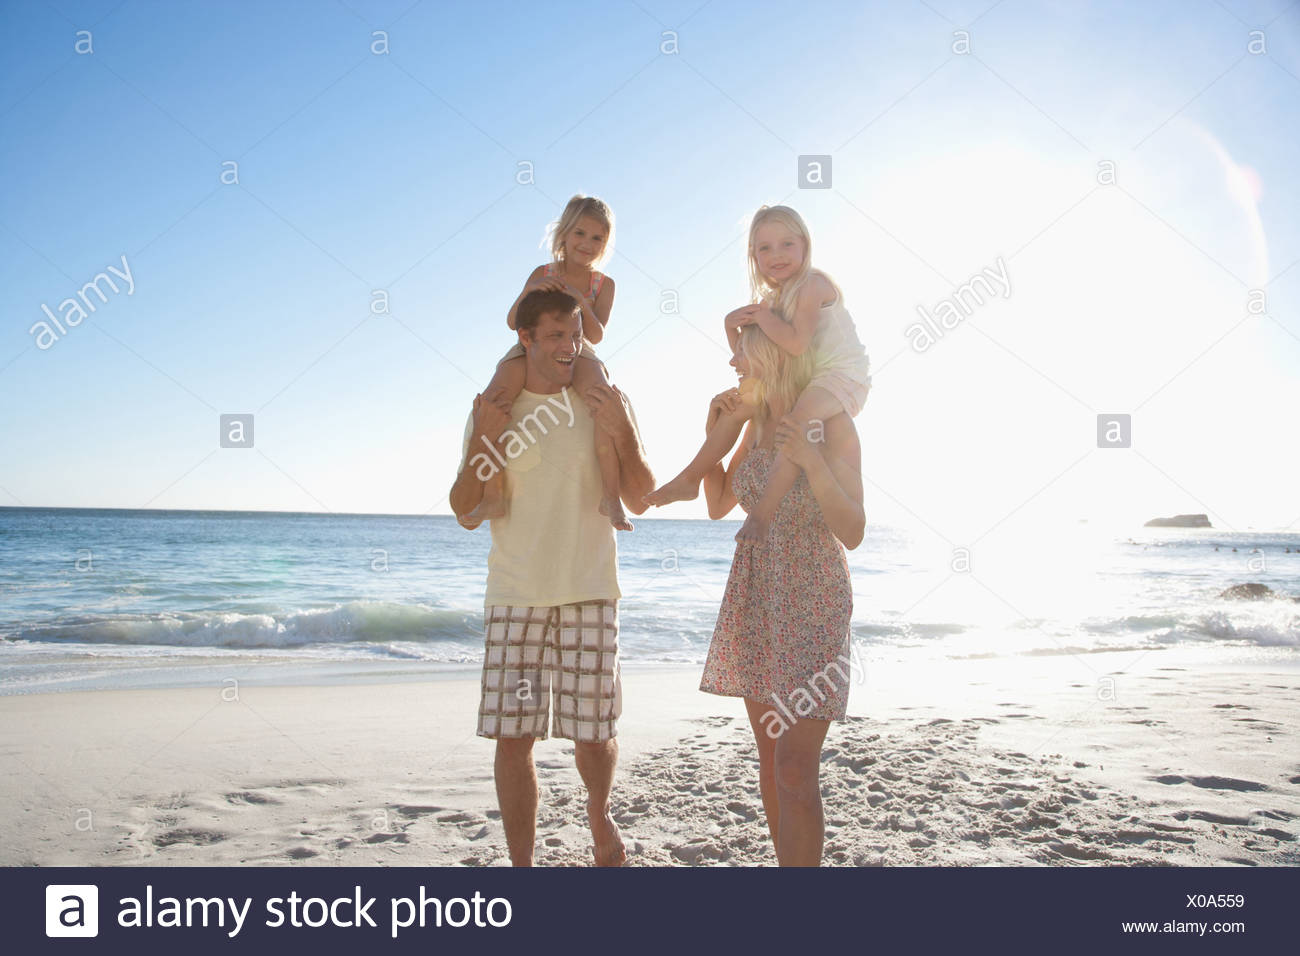 Parents carrying daughters on shoulders on beach - Stock Image